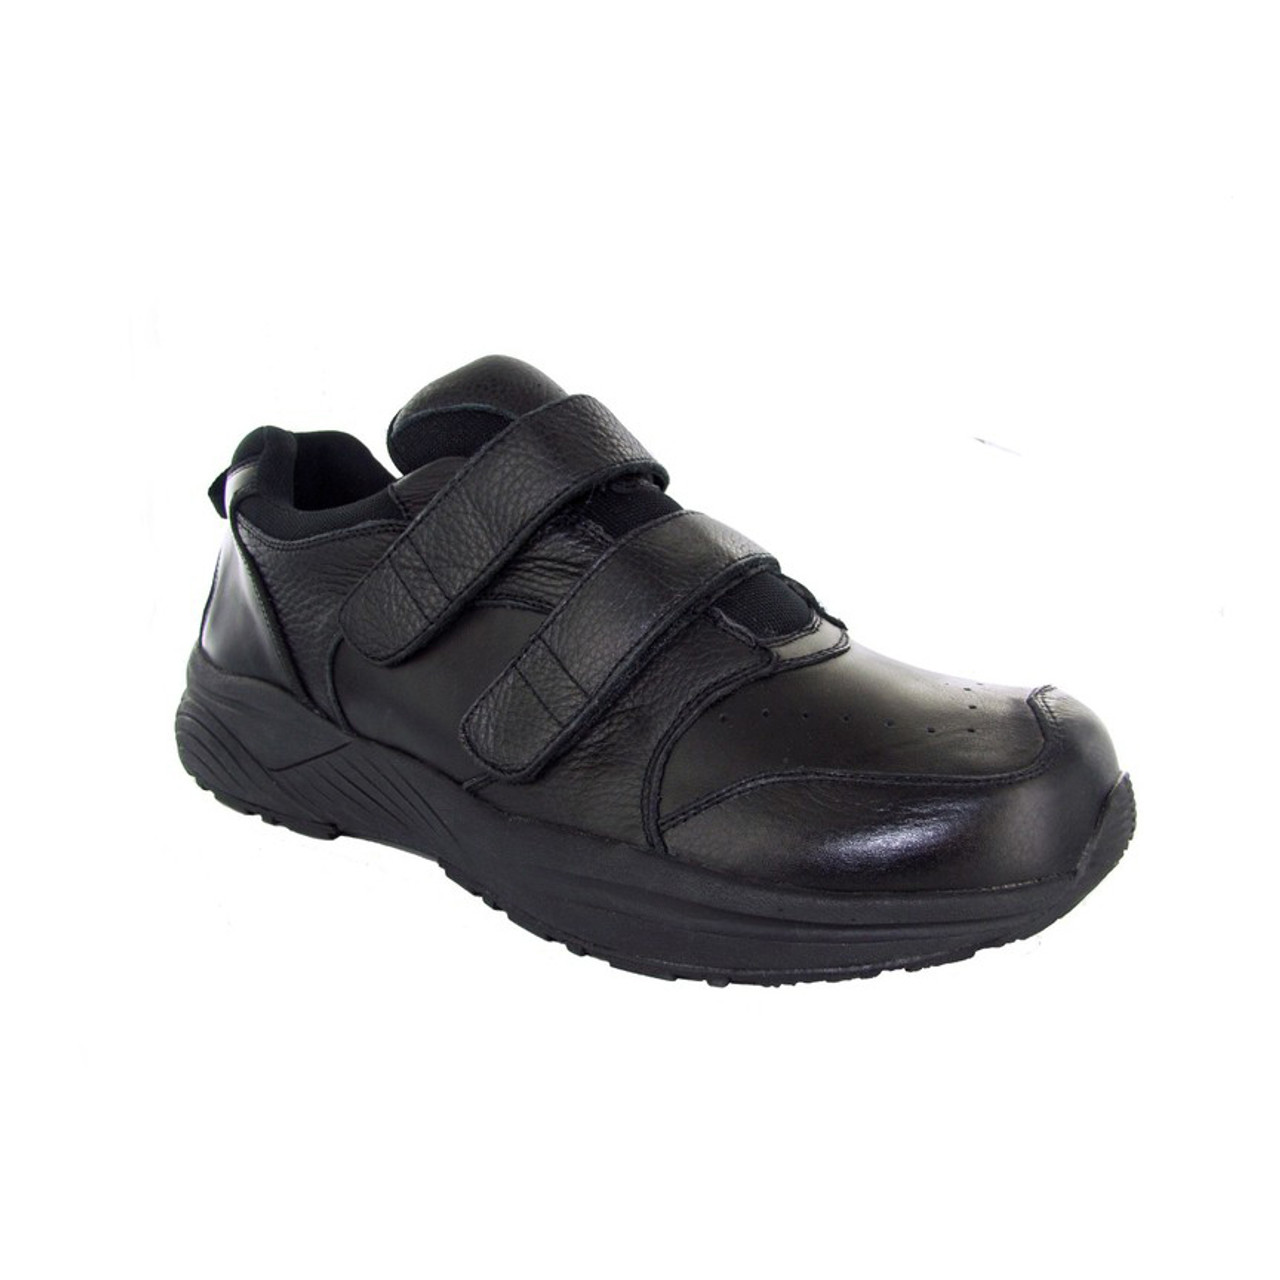 cdde40badc Black Athletic Orthopedic Shoes With Velcro Straps For Men